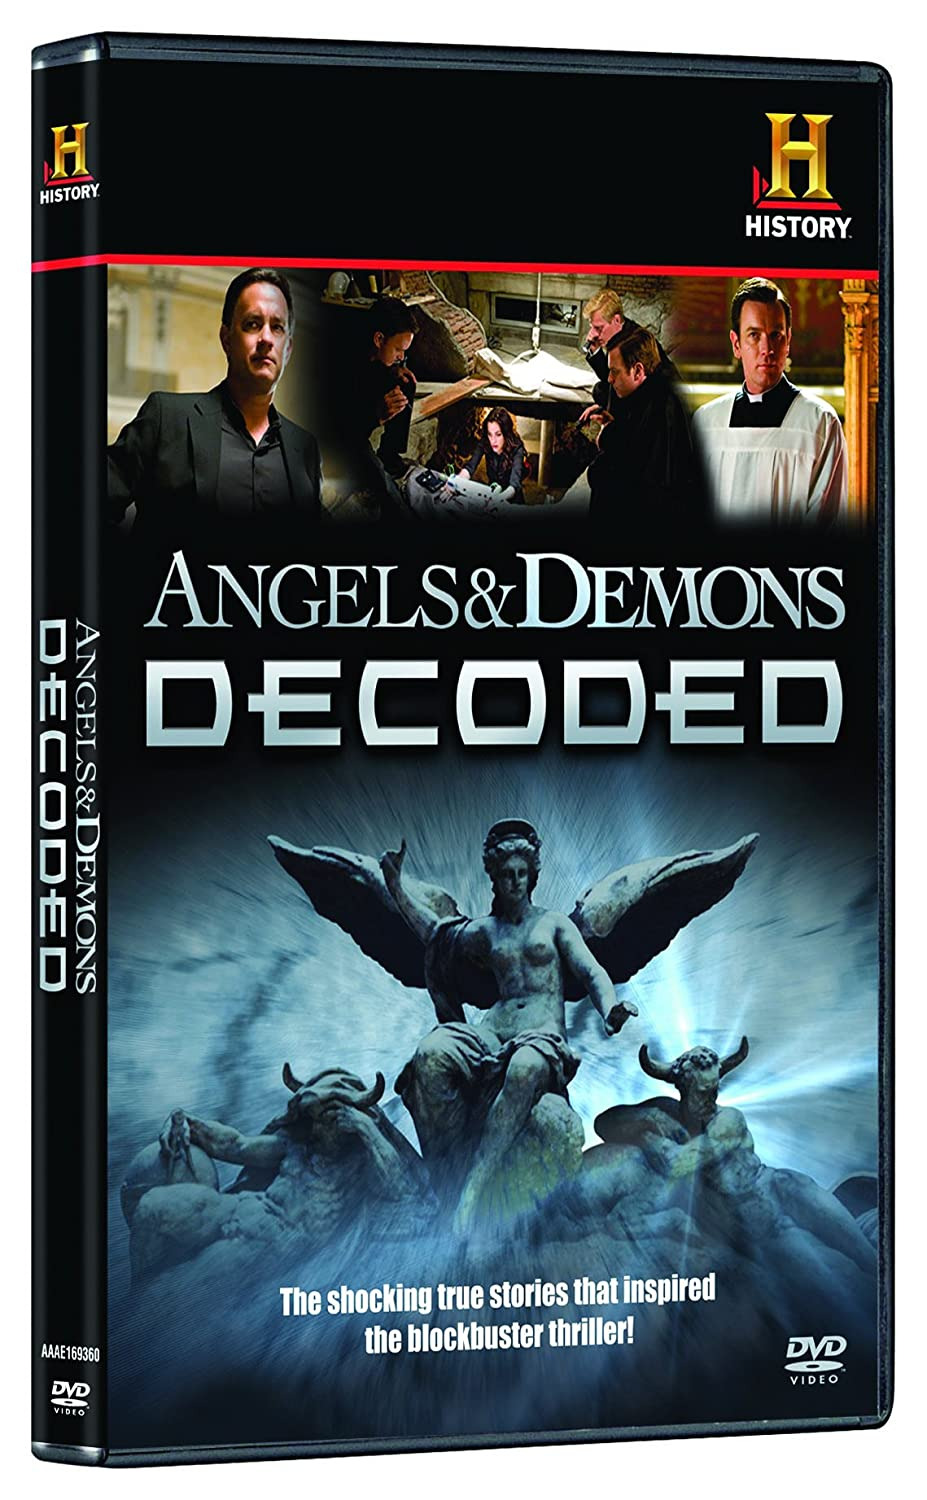 Angels and Demons Decoded Jonathan Adams eOne Films 5457072 Movie